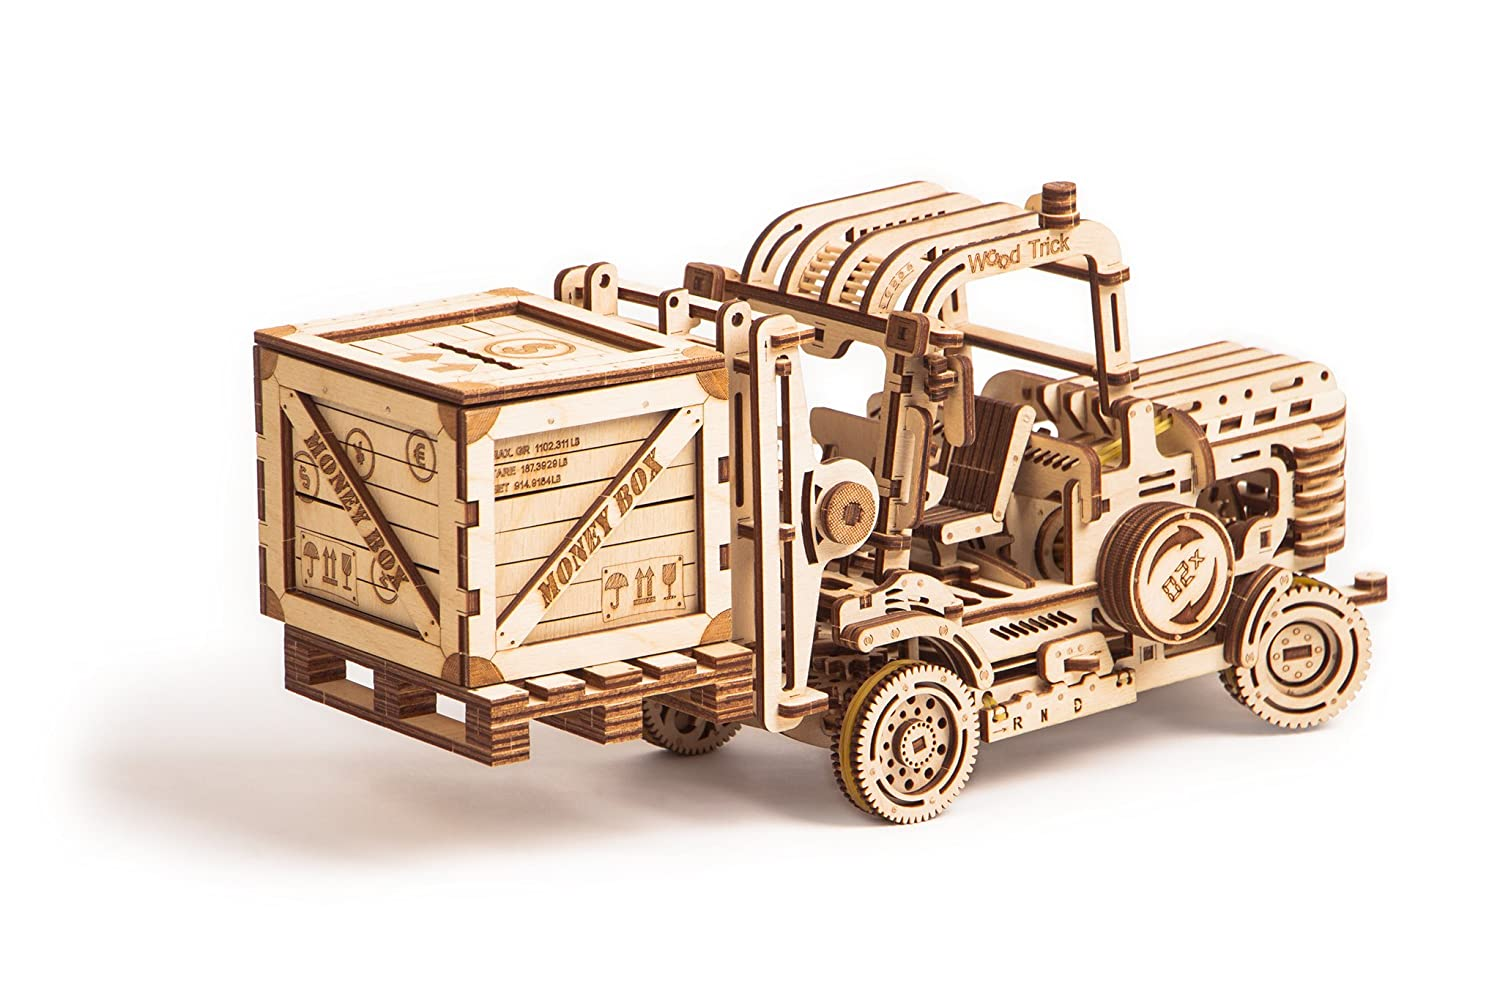 Wood Trick Model 3D Mechanical Teens Model Forklift Wooden Puzzle, Assembly for Constructor, Brain Teaser, Best DIY Toy, IQ Game for Teens and Adults B07BM22Q2Y, 広島市:d51b025b --- m2cweb.com